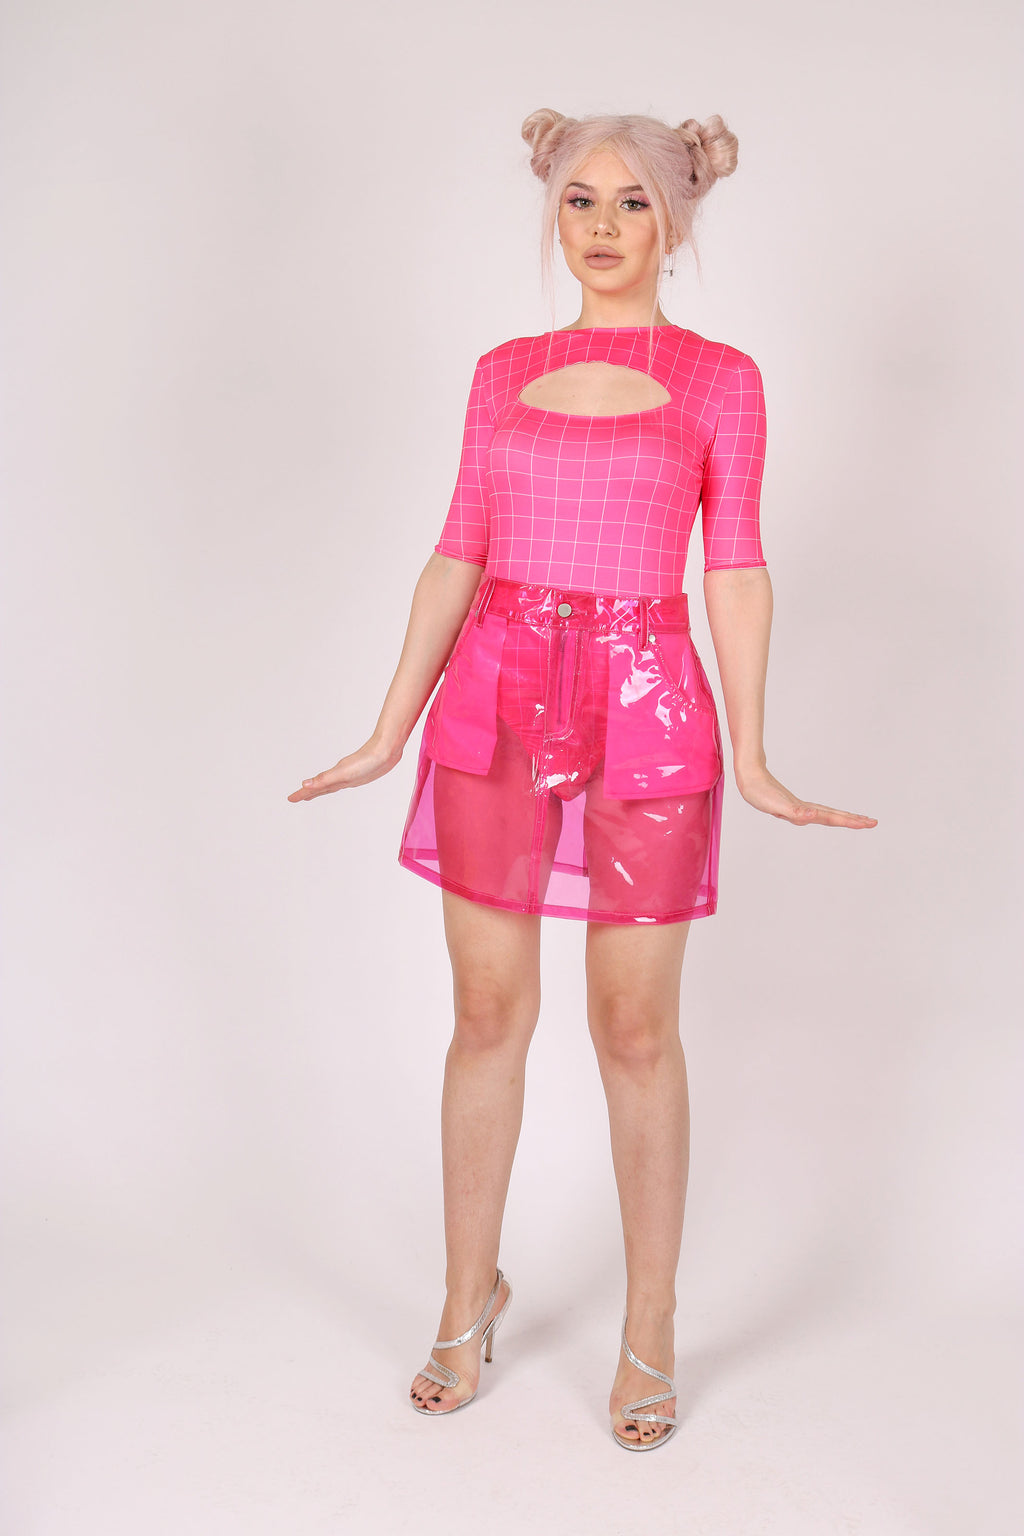 In A Barbie World 'Pink Clear Vinyl Skirt'